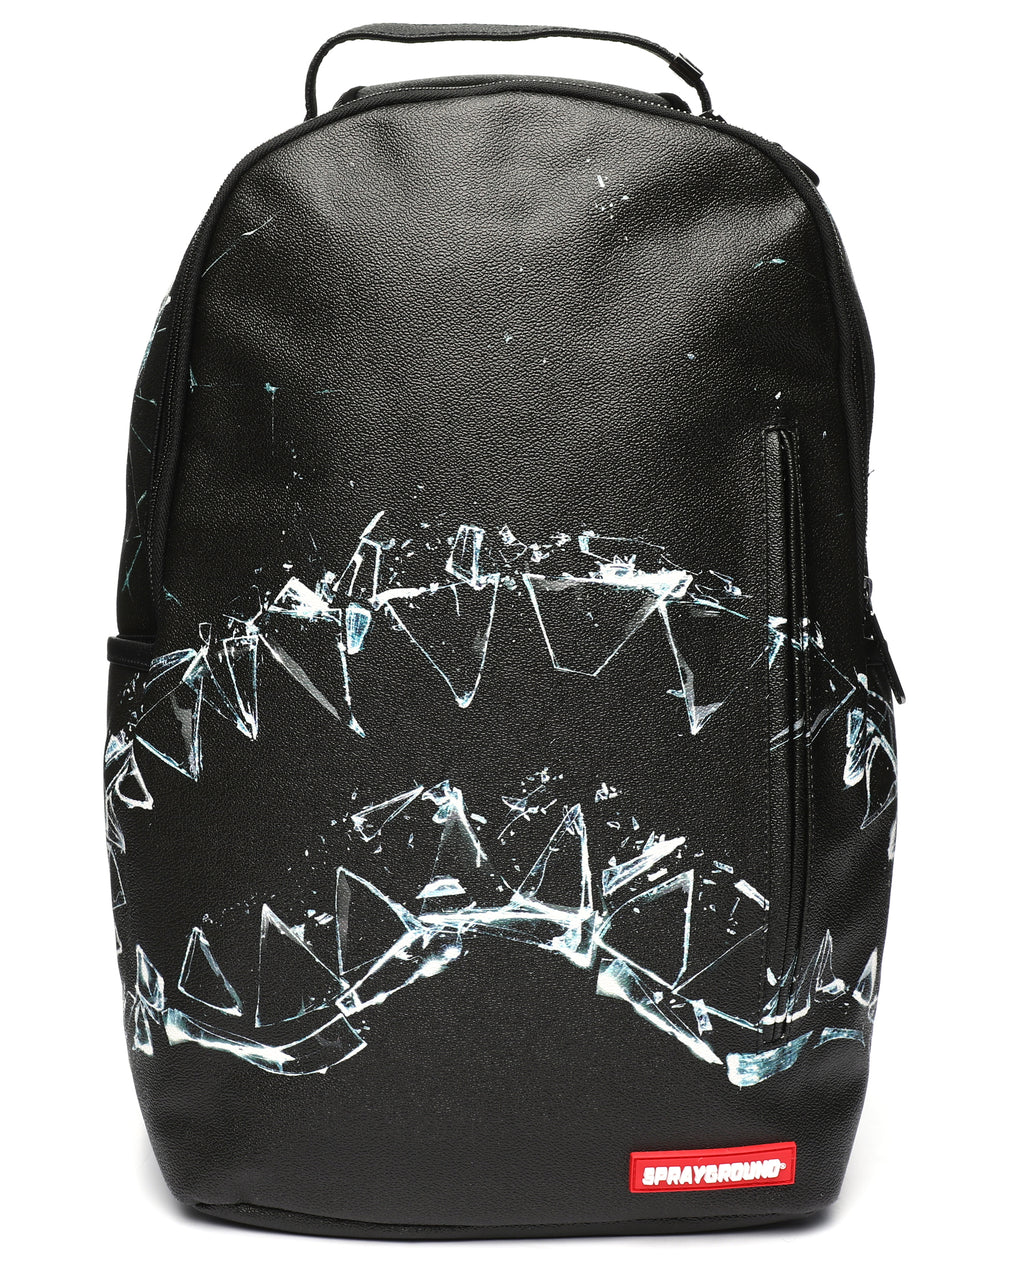 Sprayground Broken Glass Shark Backpack